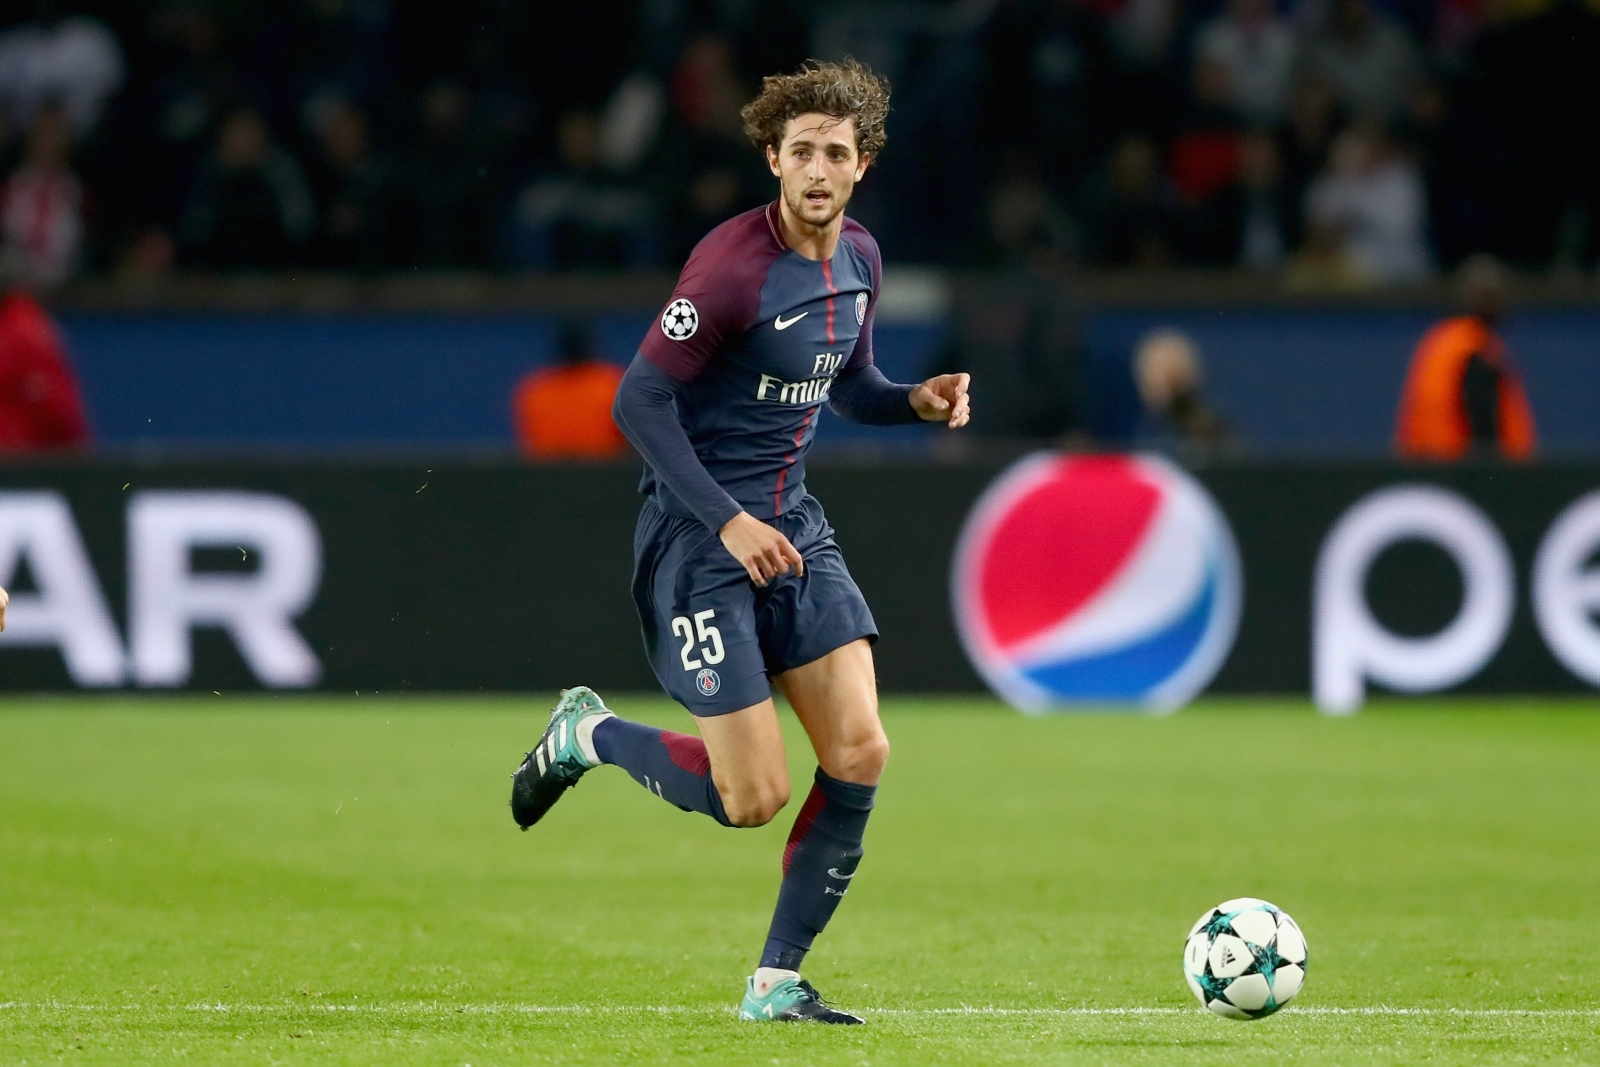 Top PSG star admits Prem interest, mentions love of Liverpool